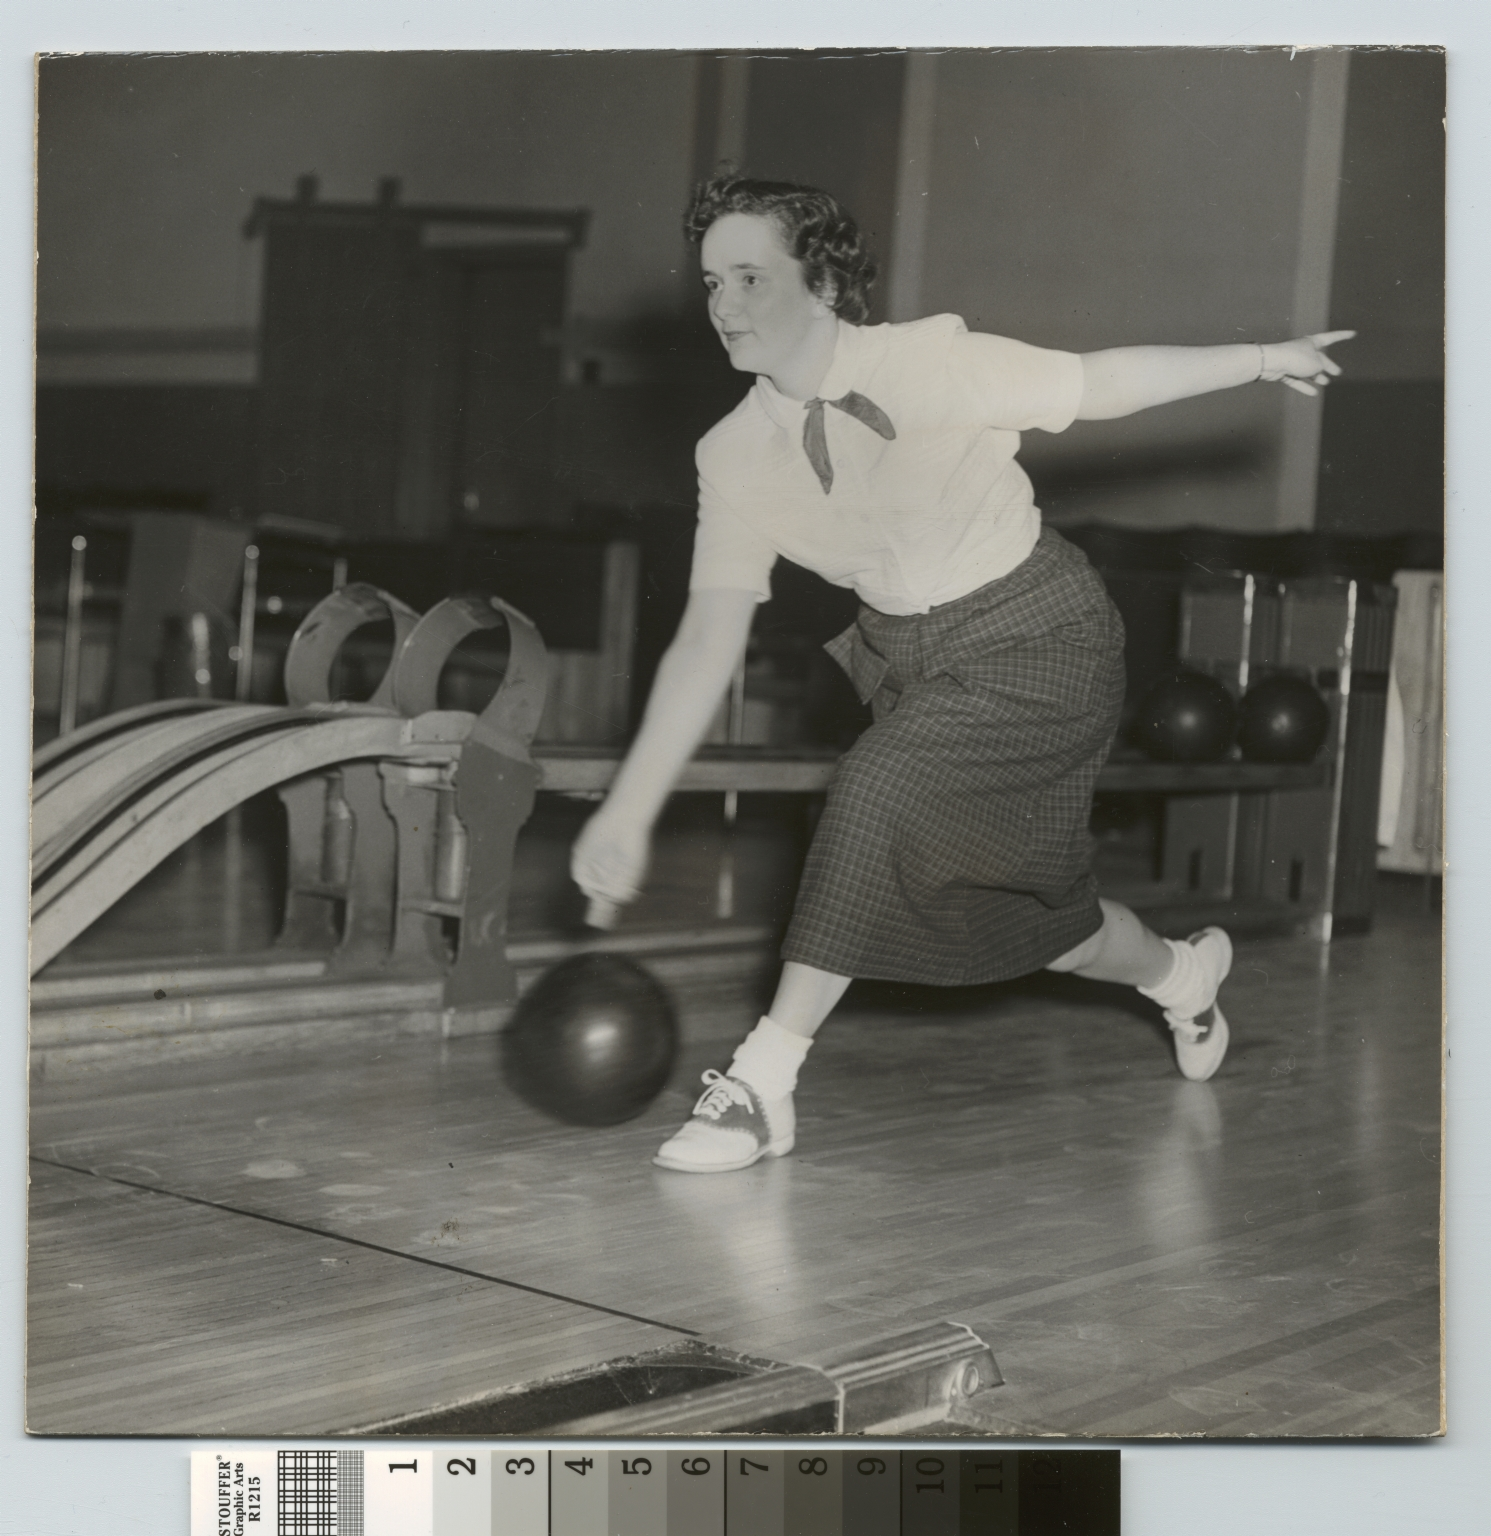 Student activities, Rochester Institute of Technology, female bowler, 1951